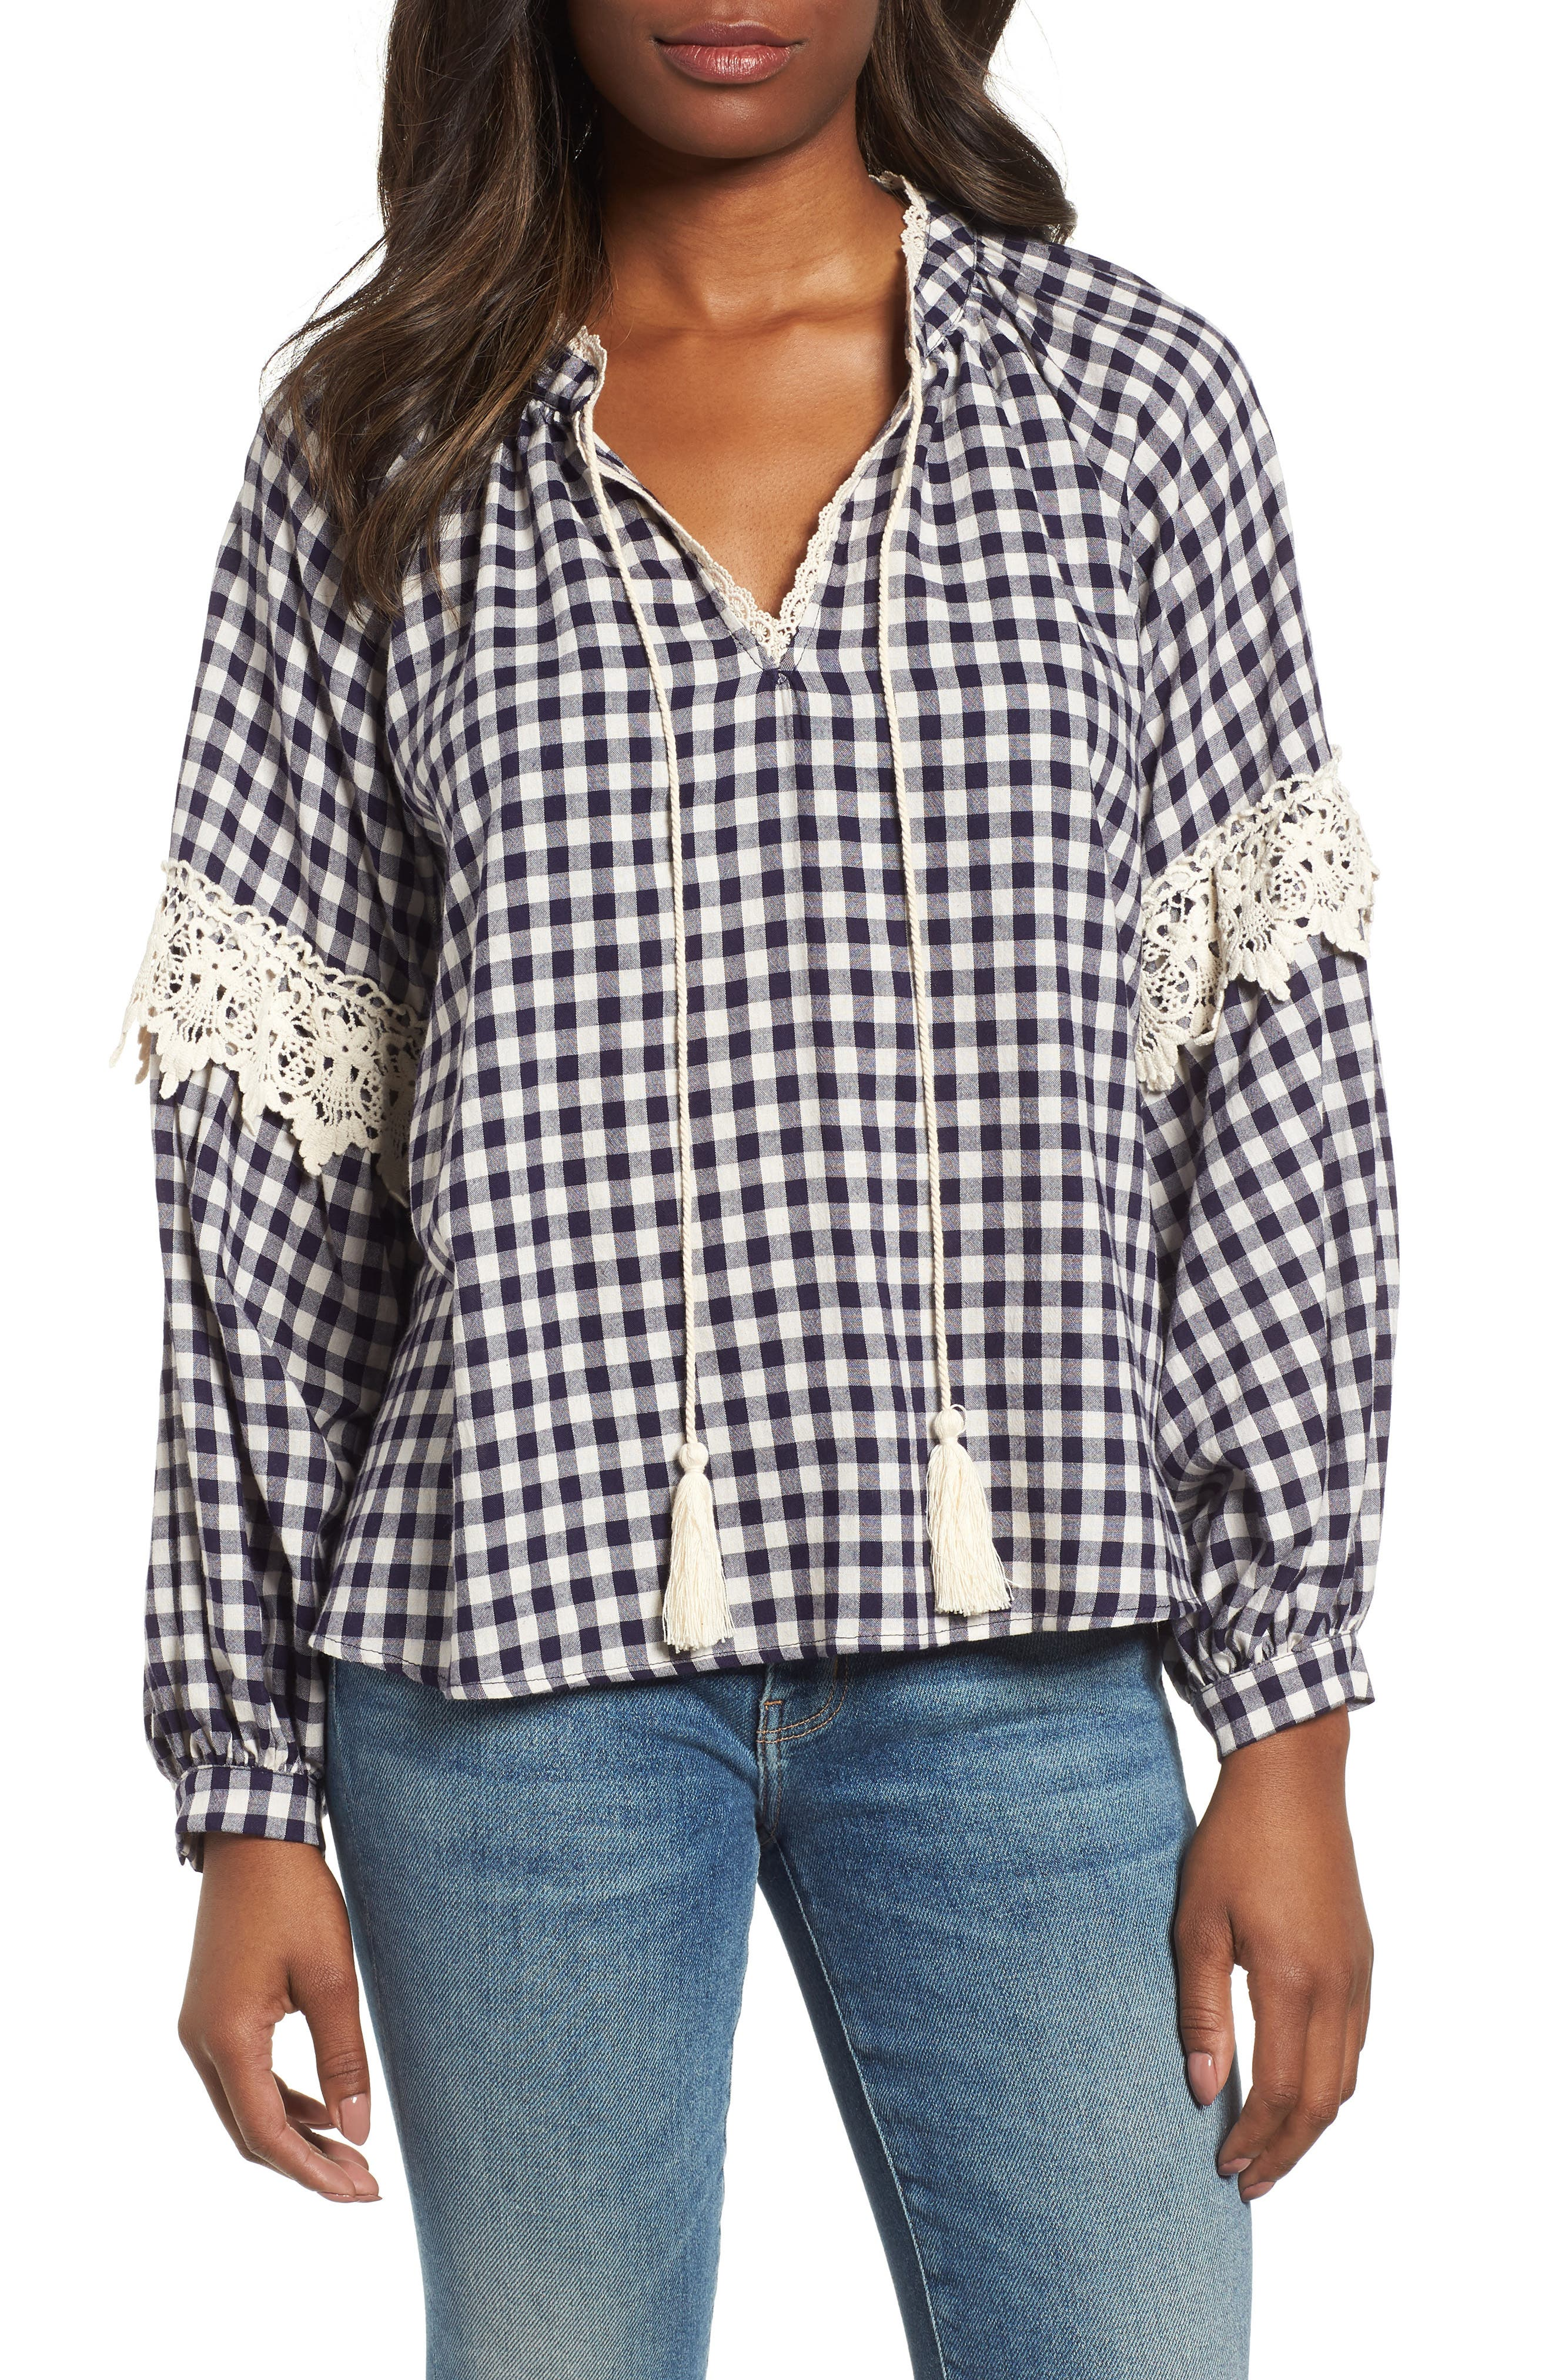 Gingham Check Peasant Top,                             Main thumbnail 1, color,                             Navy White Gingham